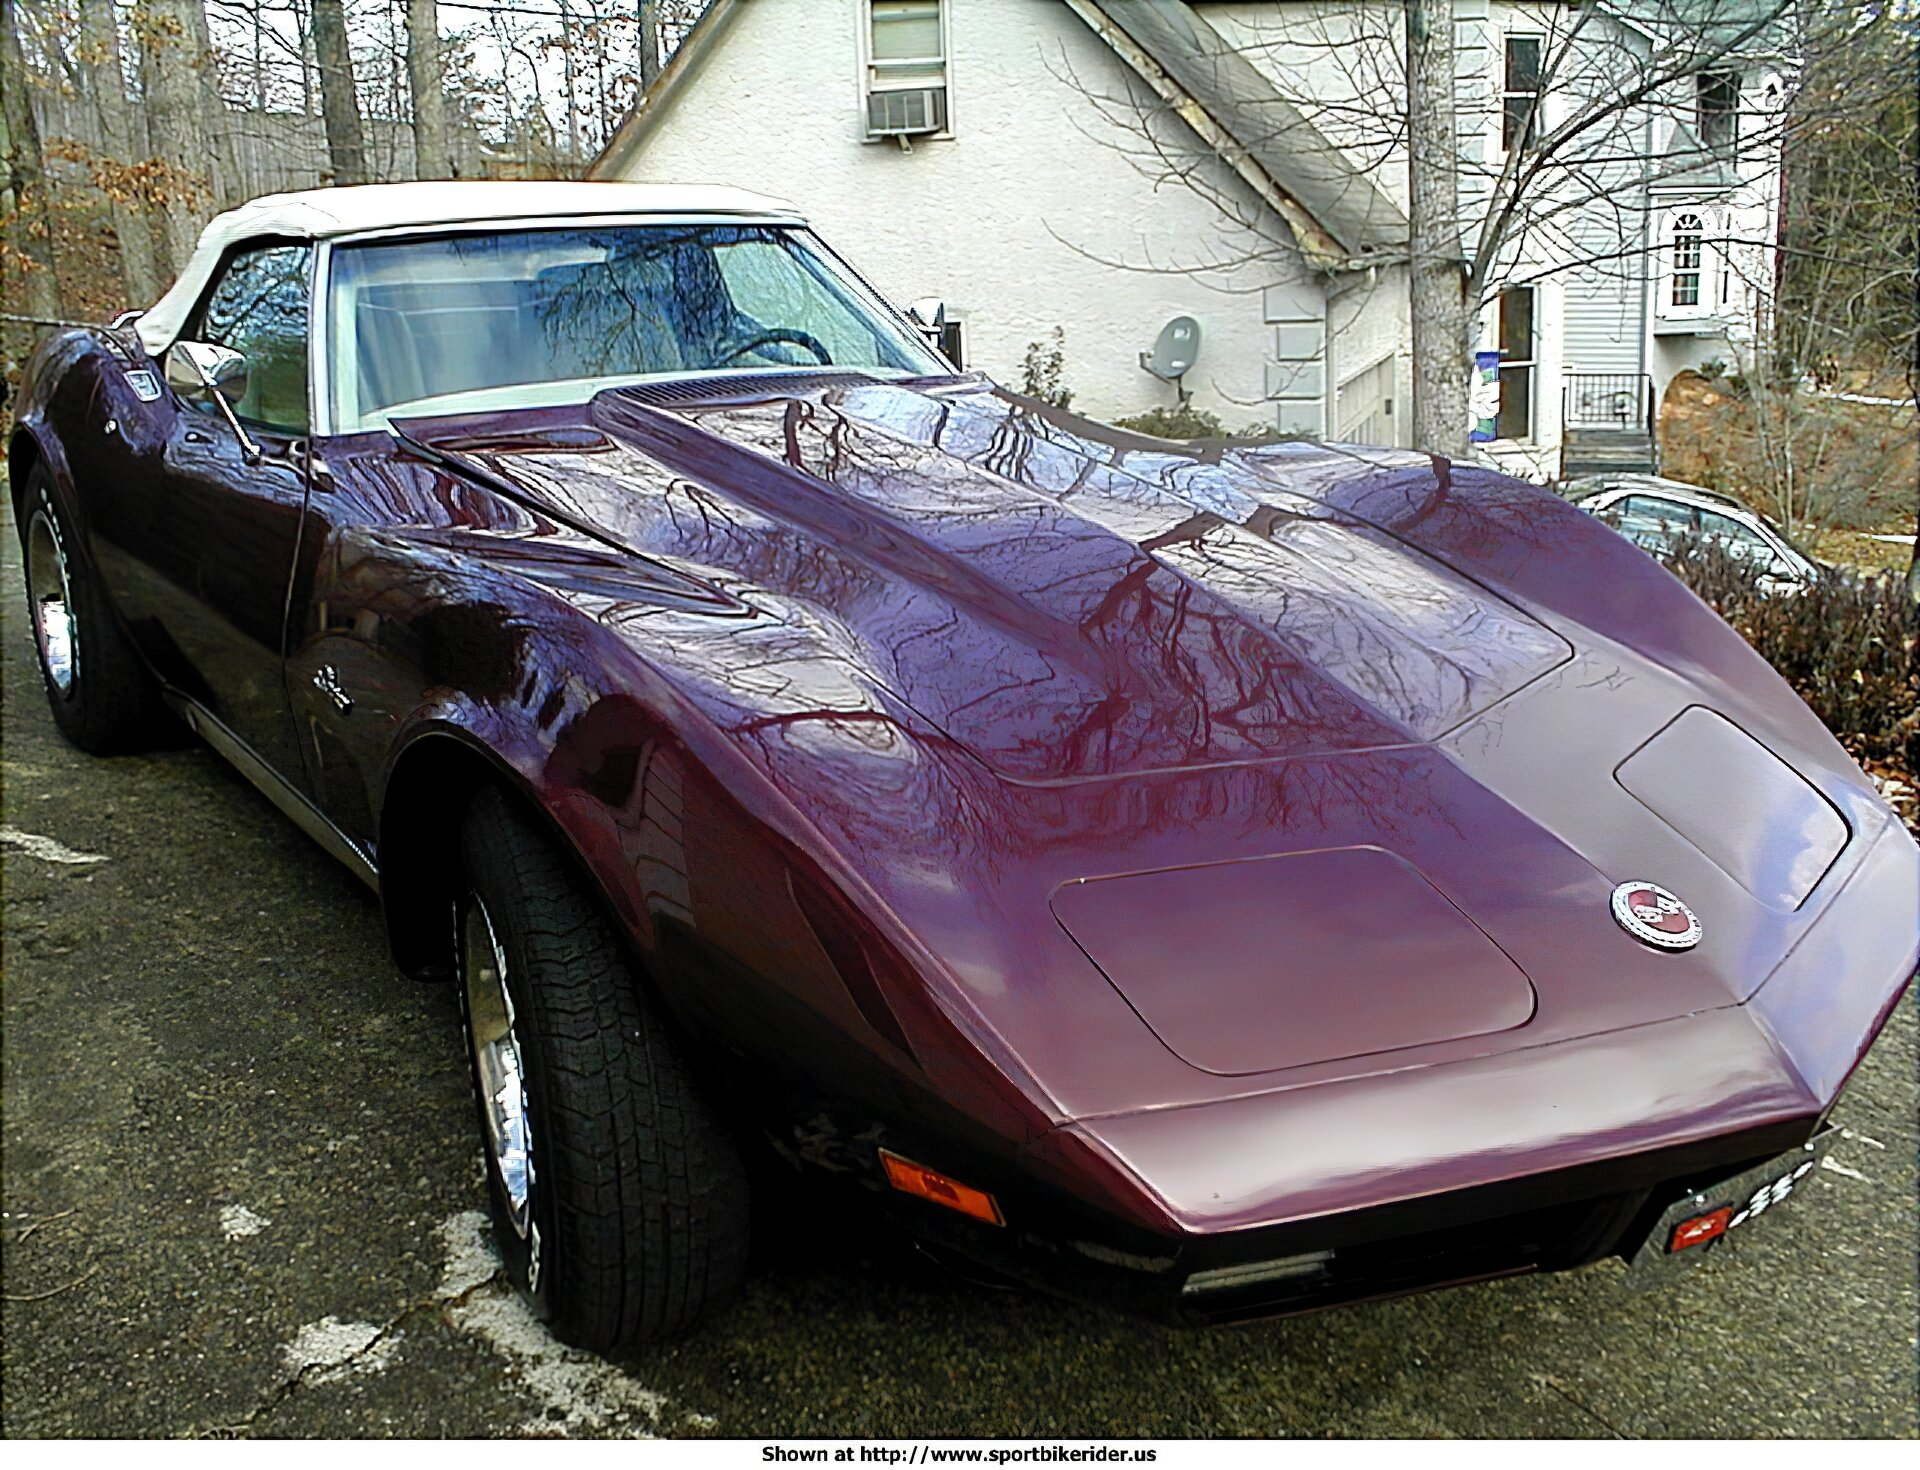 74 Stingray Convertible fully restored with 375hp to the rear wheels - Chevrolet Corvette - ID: 1024